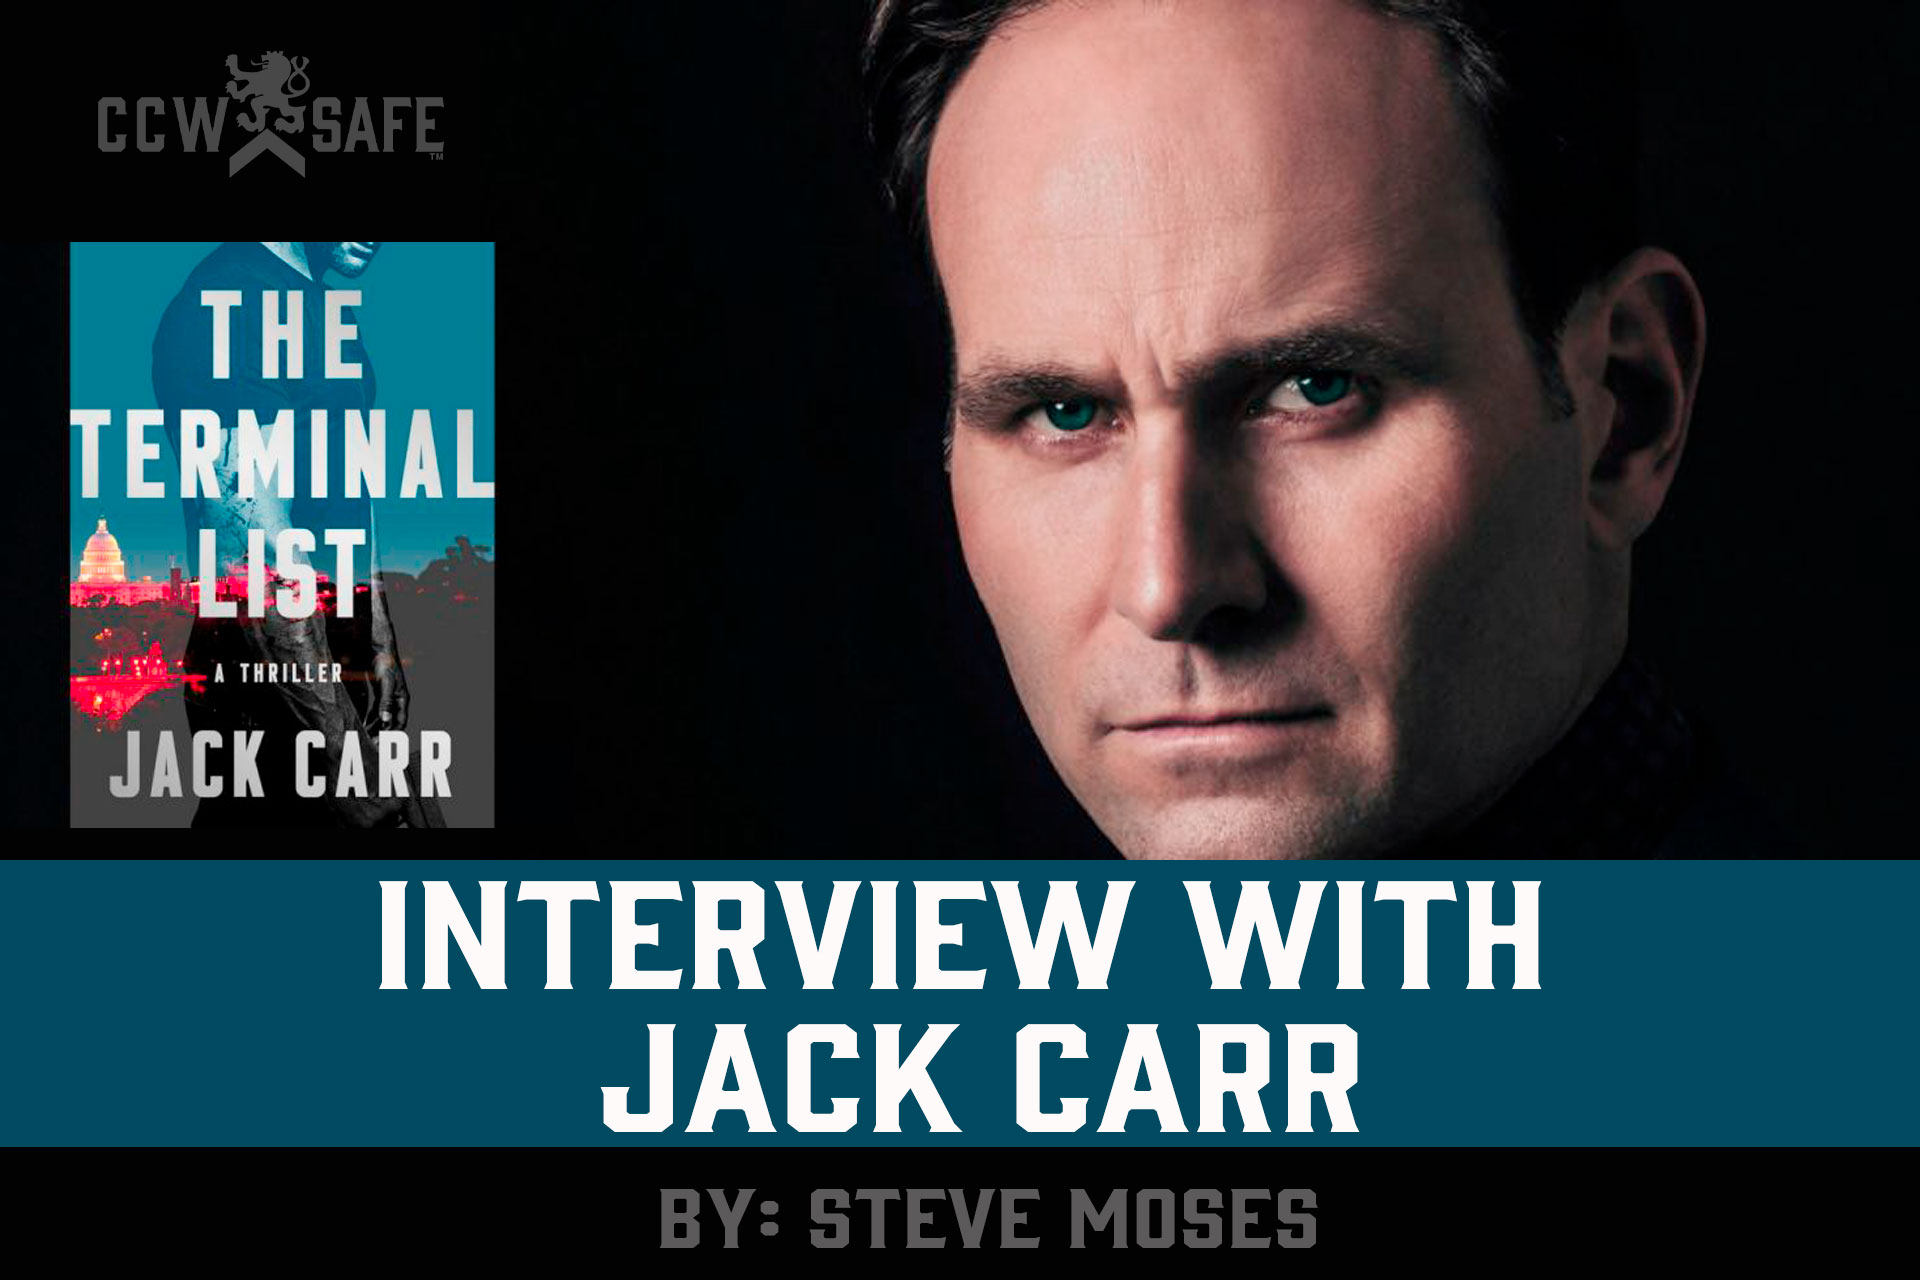 Interview with Jack Carr